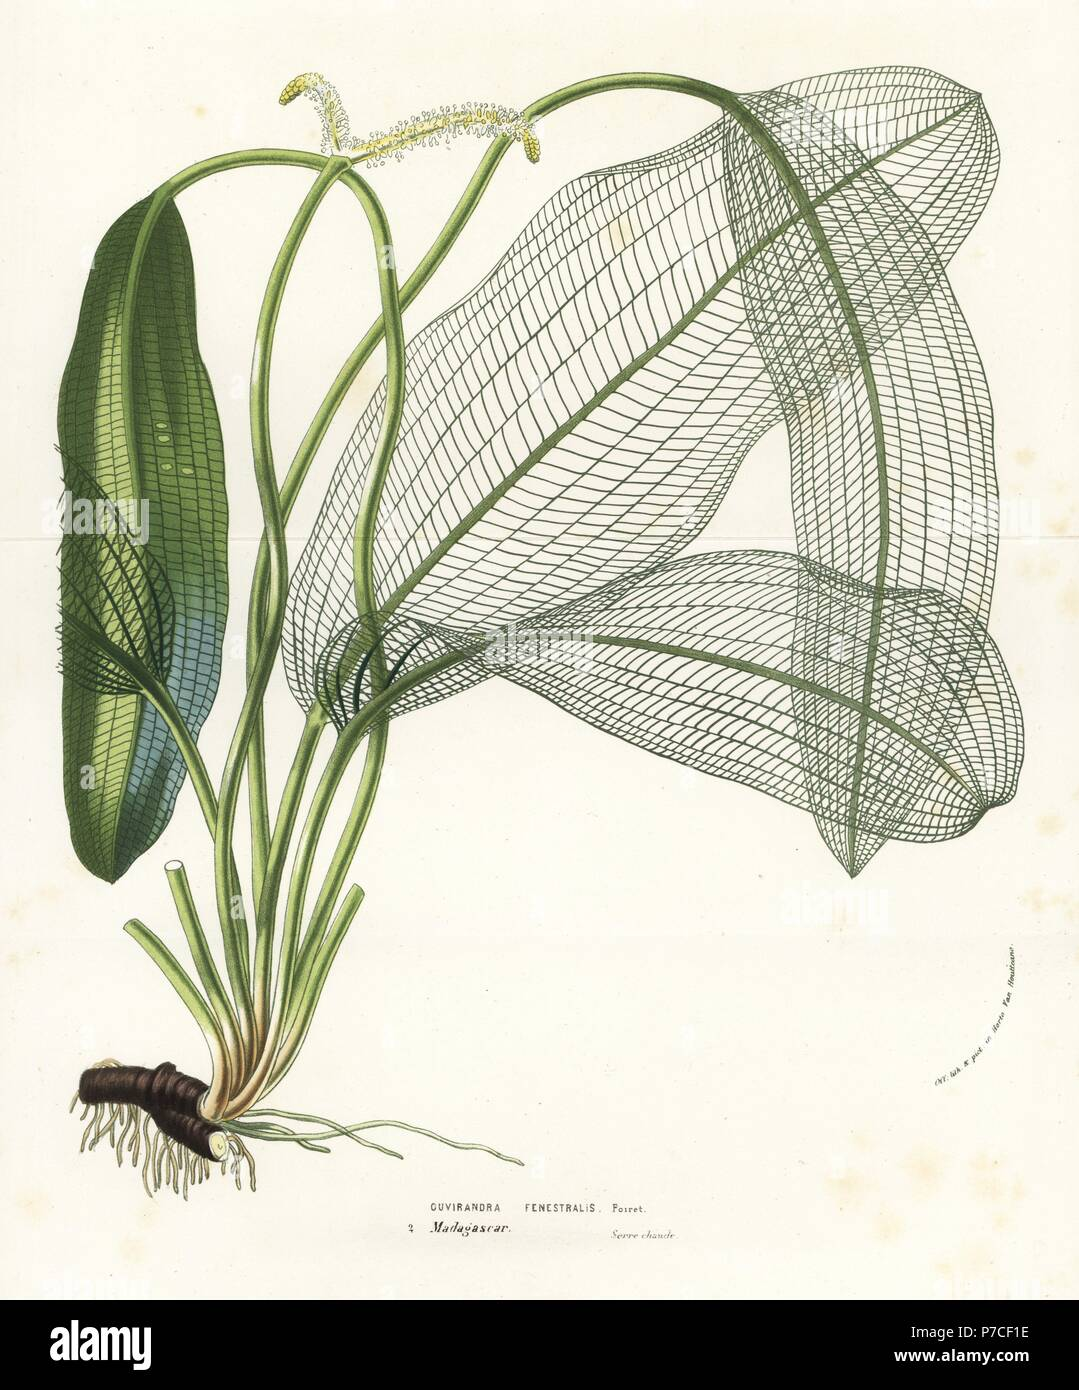 Madagascar laceleaf, lattice leaf or lace plant, Aponogeton madagascariensis (Ouvirandra fenestralis). Handcoloured lithograph from Louis van Houtte and Charles Lemaire's Flowers of the Gardens and Hothouses of Europe, Flore des Serres et des Jardins de l'Europe, Ghent, Belgium, 1856. - Stock Image